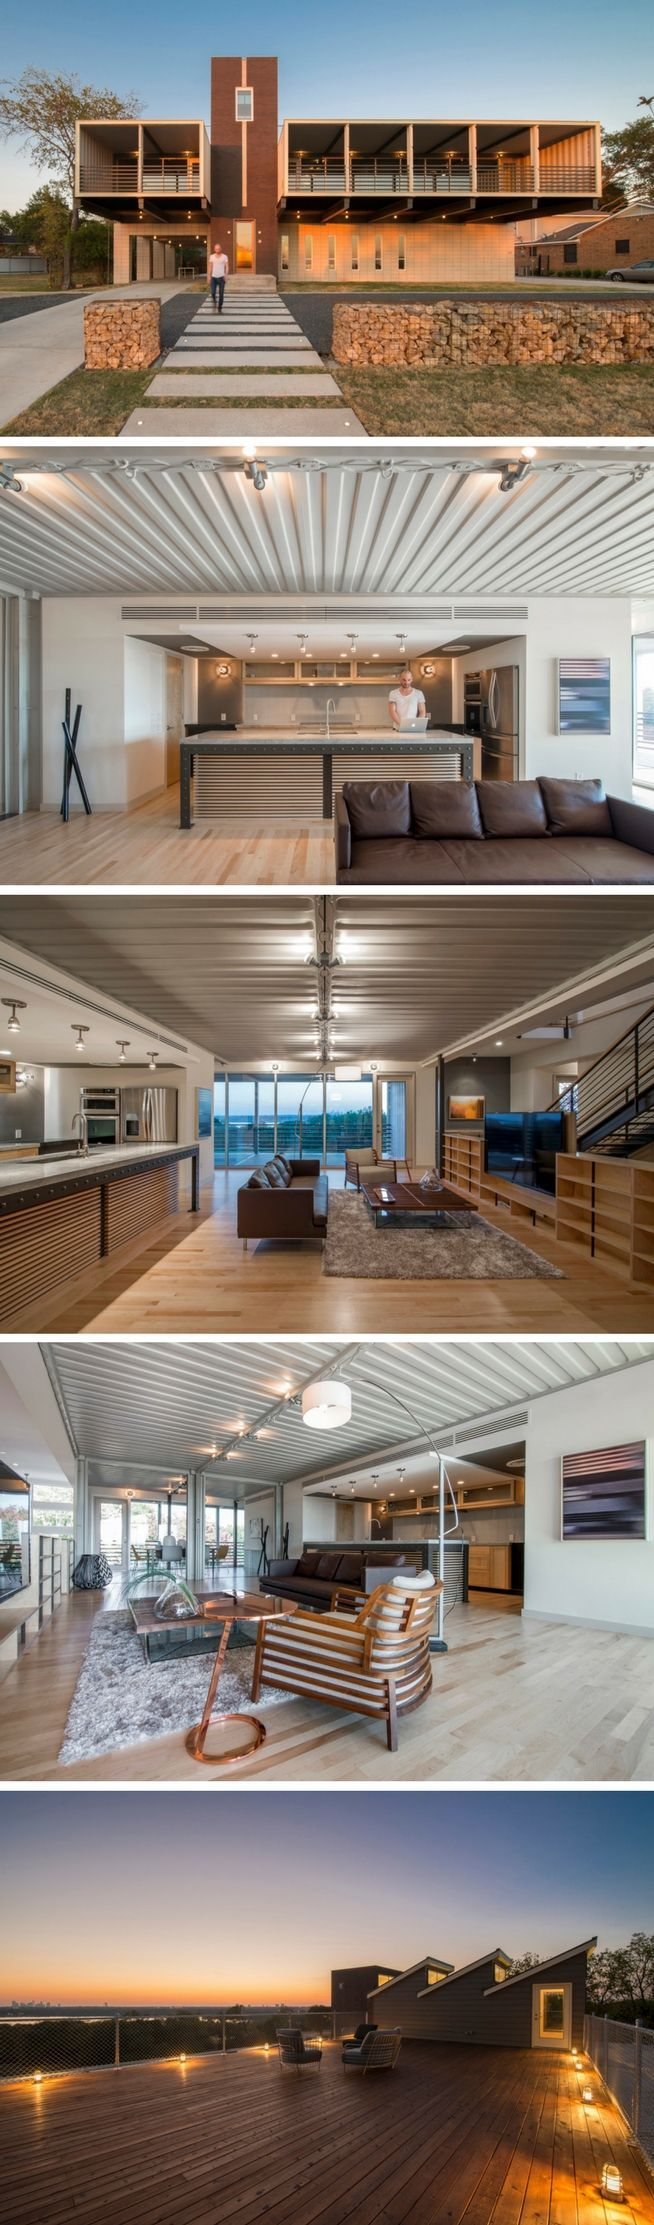 PV14 SHIPPING CONTAINER HOUSE